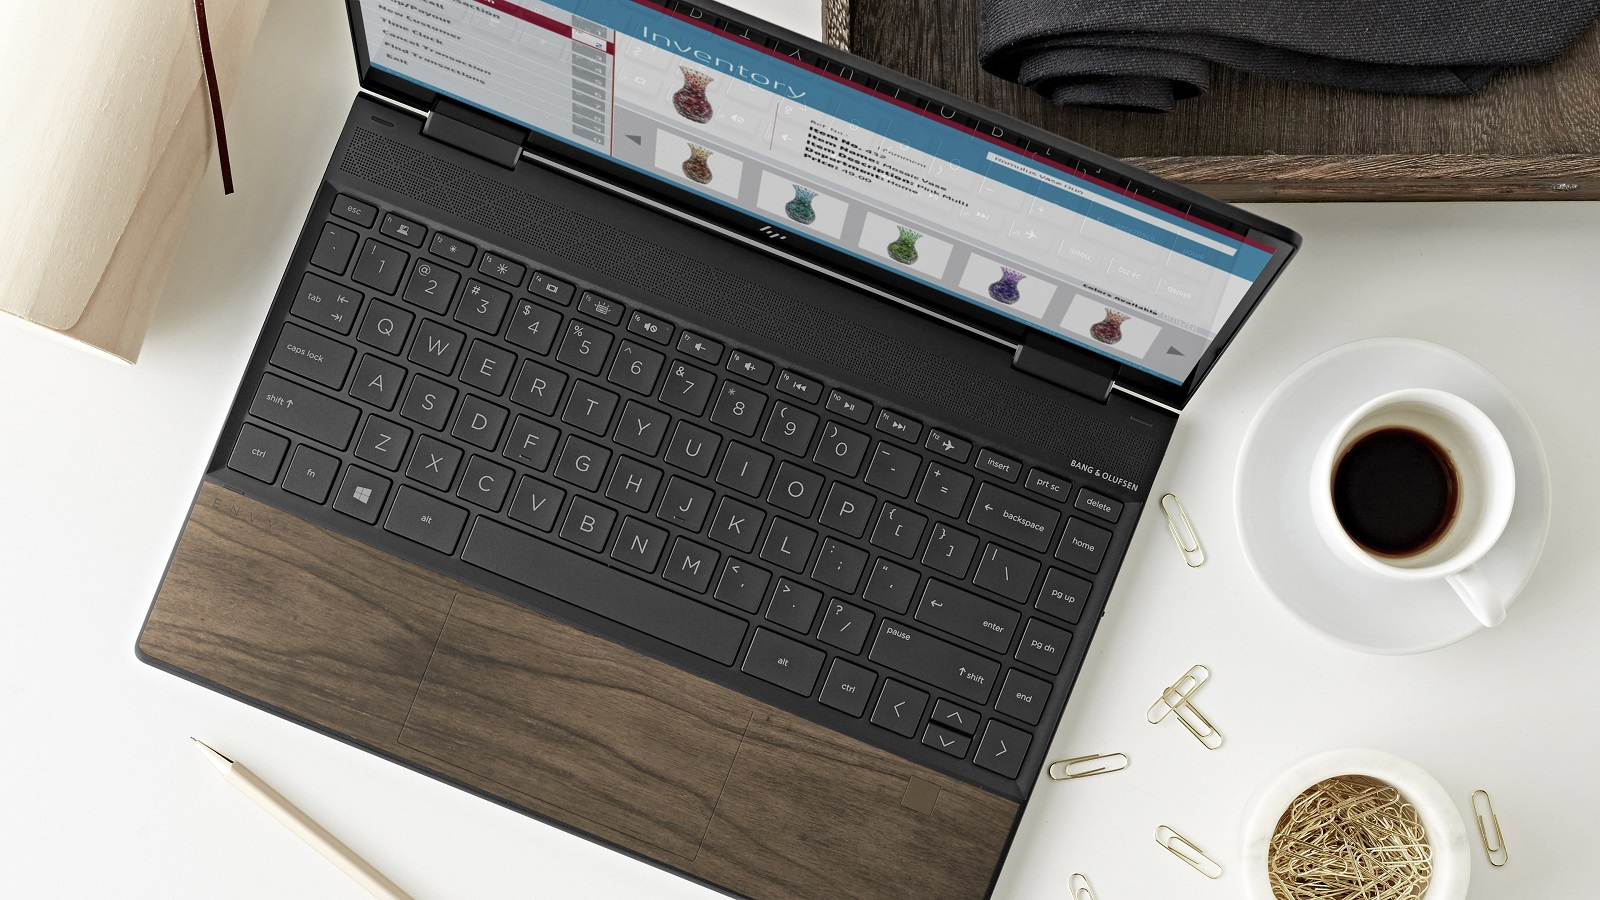 Así se ve Envy Wood, la nueva notebook de HP en madera